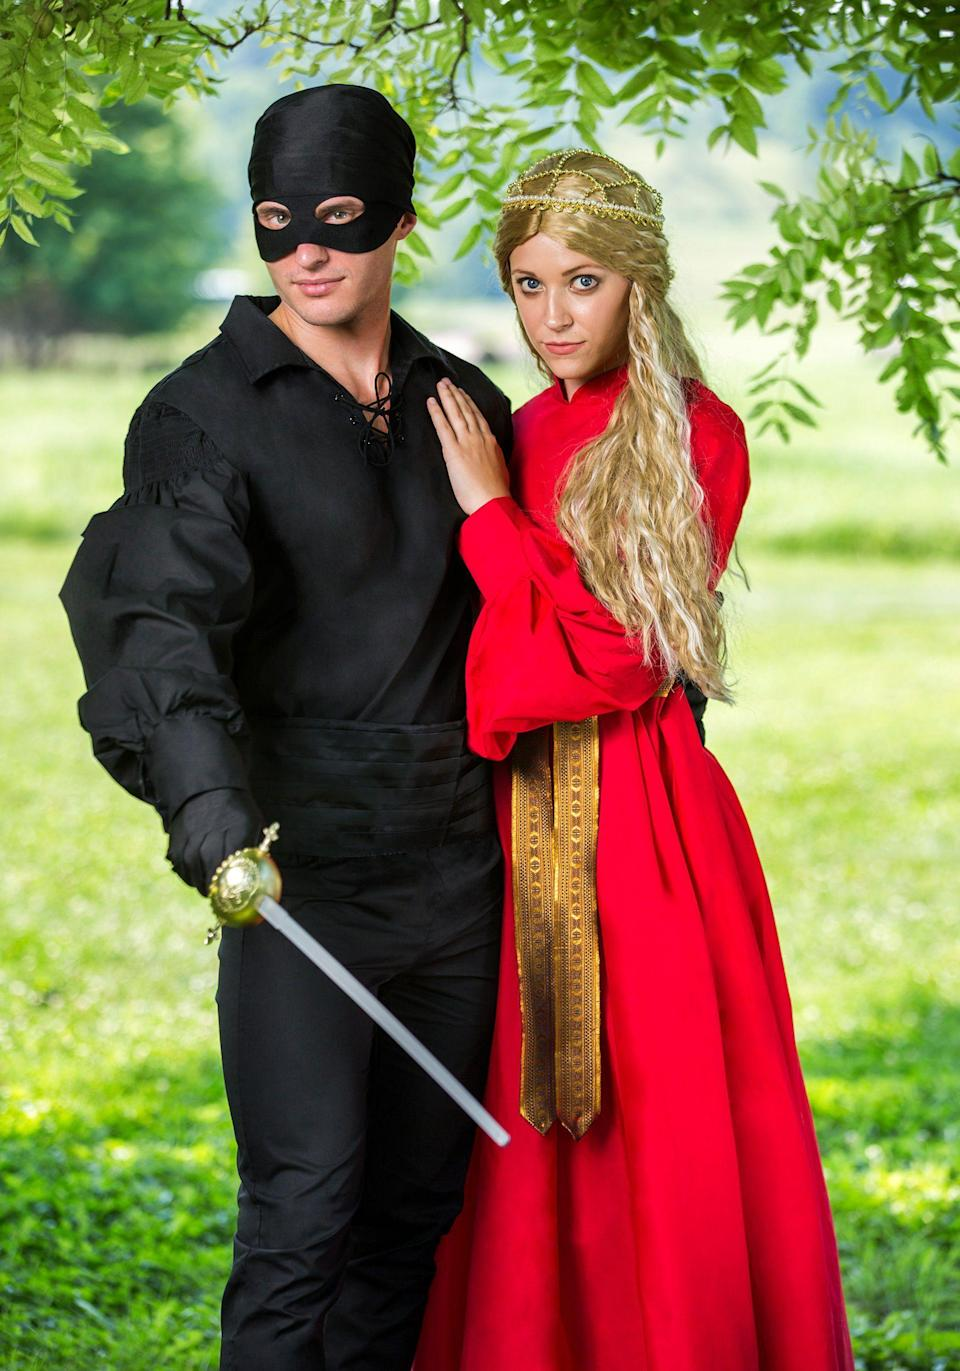 """<p><strong>Fun Costumes</strong></p><p>amazon.com</p><p><strong>$59.99</strong></p><p><a href=""""https://www.amazon.com/dp/B01LWK7IAV?tag=syn-yahoo-20&ascsubtag=%5Bartid%7C10055.g.4544%5Bsrc%7Cyahoo-us"""" rel=""""nofollow noopener"""" target=""""_blank"""" data-ylk=""""slk:Shop Now"""" class=""""link rapid-noclick-resp"""">Shop Now</a></p><p>Grab your <a href=""""https://www.amazon.com/FunCostumes-Exclusive-Princess-Westley-Costume/dp/B01LZ5WMZZ/ref=cts_ap_3_vtp?tag=syn-yahoo-20&ascsubtag=%5Bartid%7C10055.g.4544%5Bsrc%7Cyahoo-us"""" rel=""""nofollow noopener"""" target=""""_blank"""" data-ylk=""""slk:Westley"""" class=""""link rapid-noclick-resp"""">Westley</a> and tell him to do """"as you wish"""" by dressing up in this couples costume, which celebrates one of the greatest romances of the '80s. </p><p><strong>RELATED:</strong> <a href=""""https://www.goodhousekeeping.com/holidays/halloween-ideas/g2625/halloween-costumes-for-couples/"""" rel=""""nofollow noopener"""" target=""""_blank"""" data-ylk=""""slk:60 Best Halloween Couples' Costumes"""" class=""""link rapid-noclick-resp"""">60 Best Halloween Couples' Costumes</a></p>"""